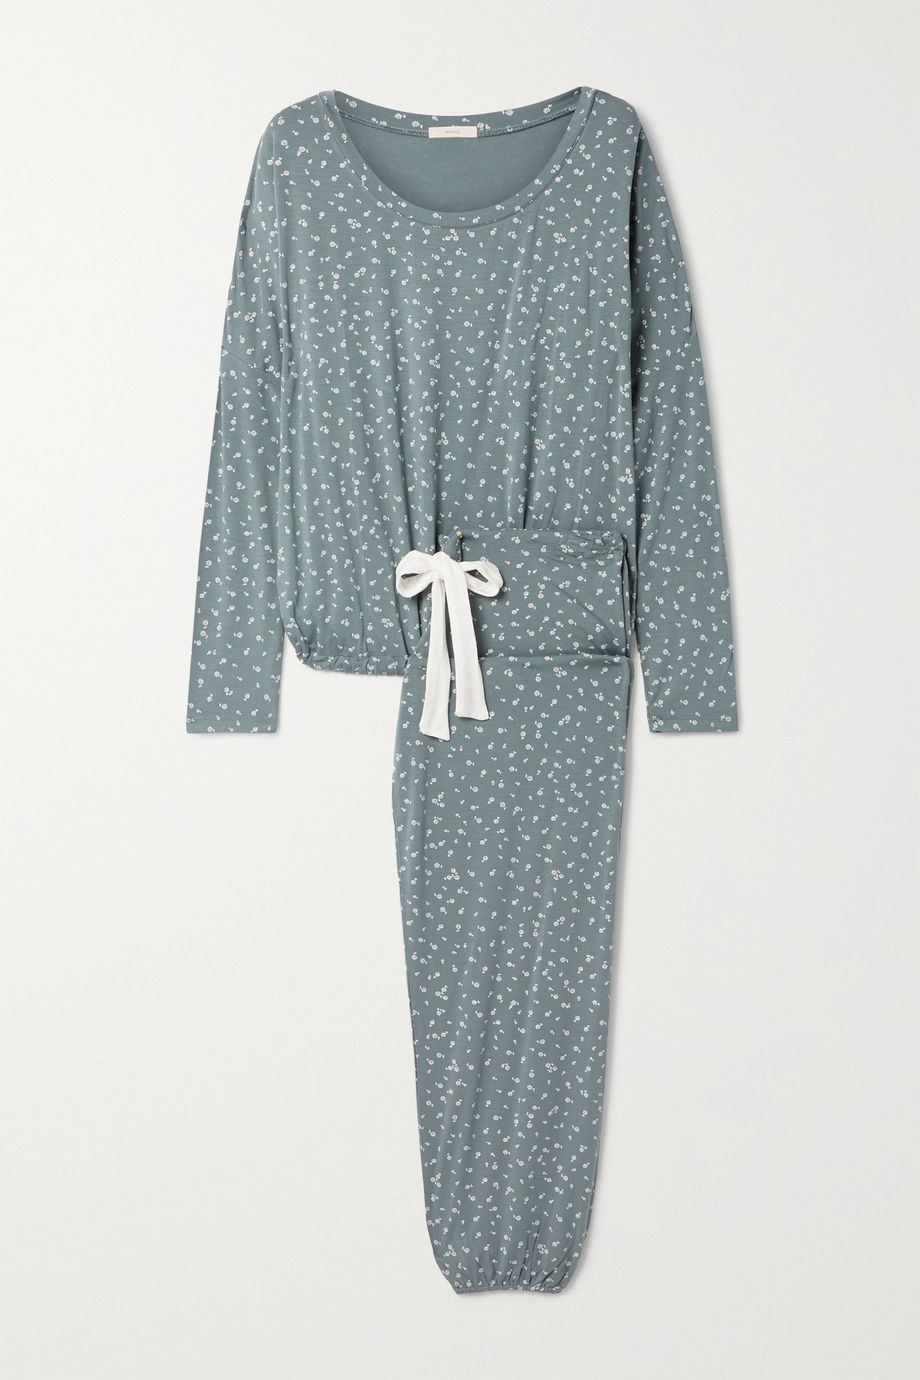 Eberjey Bloom floral-print stretch-modal jersey pajama set